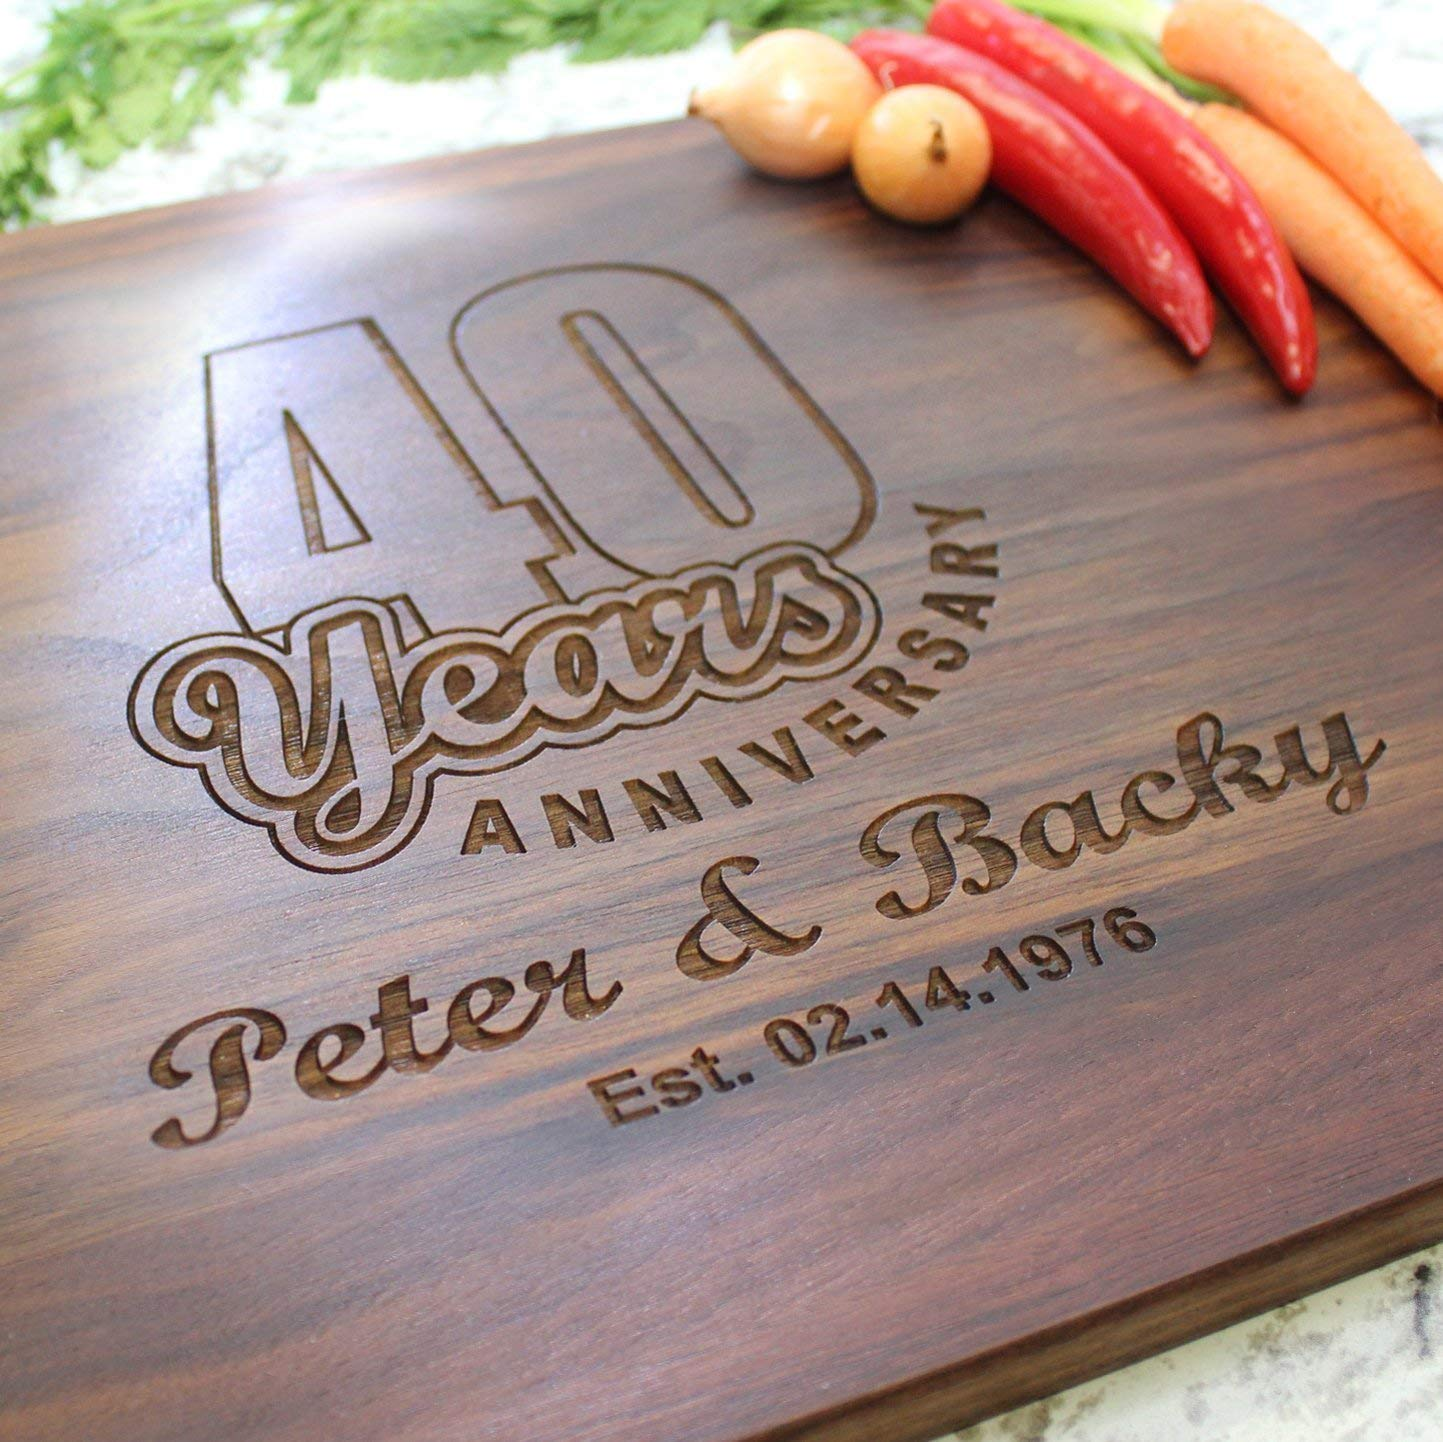 Wedding Anniversary Personalized Cutting Board - Engraved Cutting Board, Custom Cutting Board, Wedding Gift, Housewarming Gift, Anniversary Gift, Engagement W-023GB